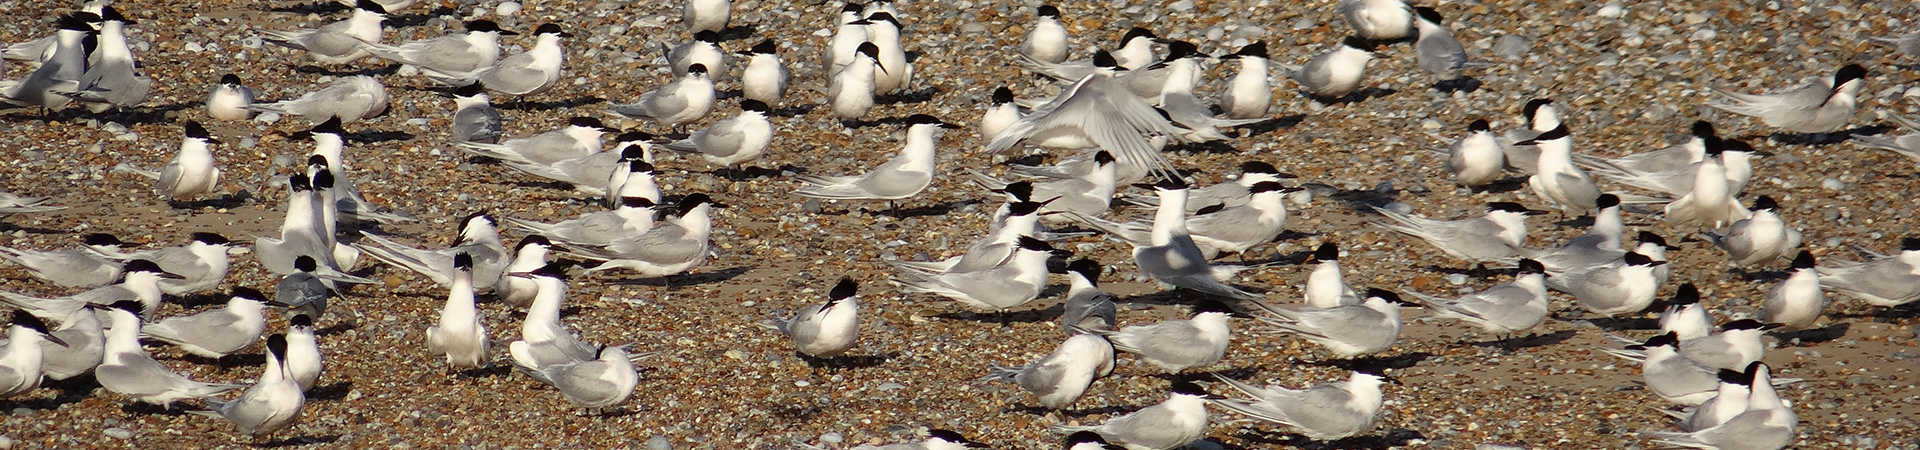 Sandwich Terns on the sand at Blakeney Point